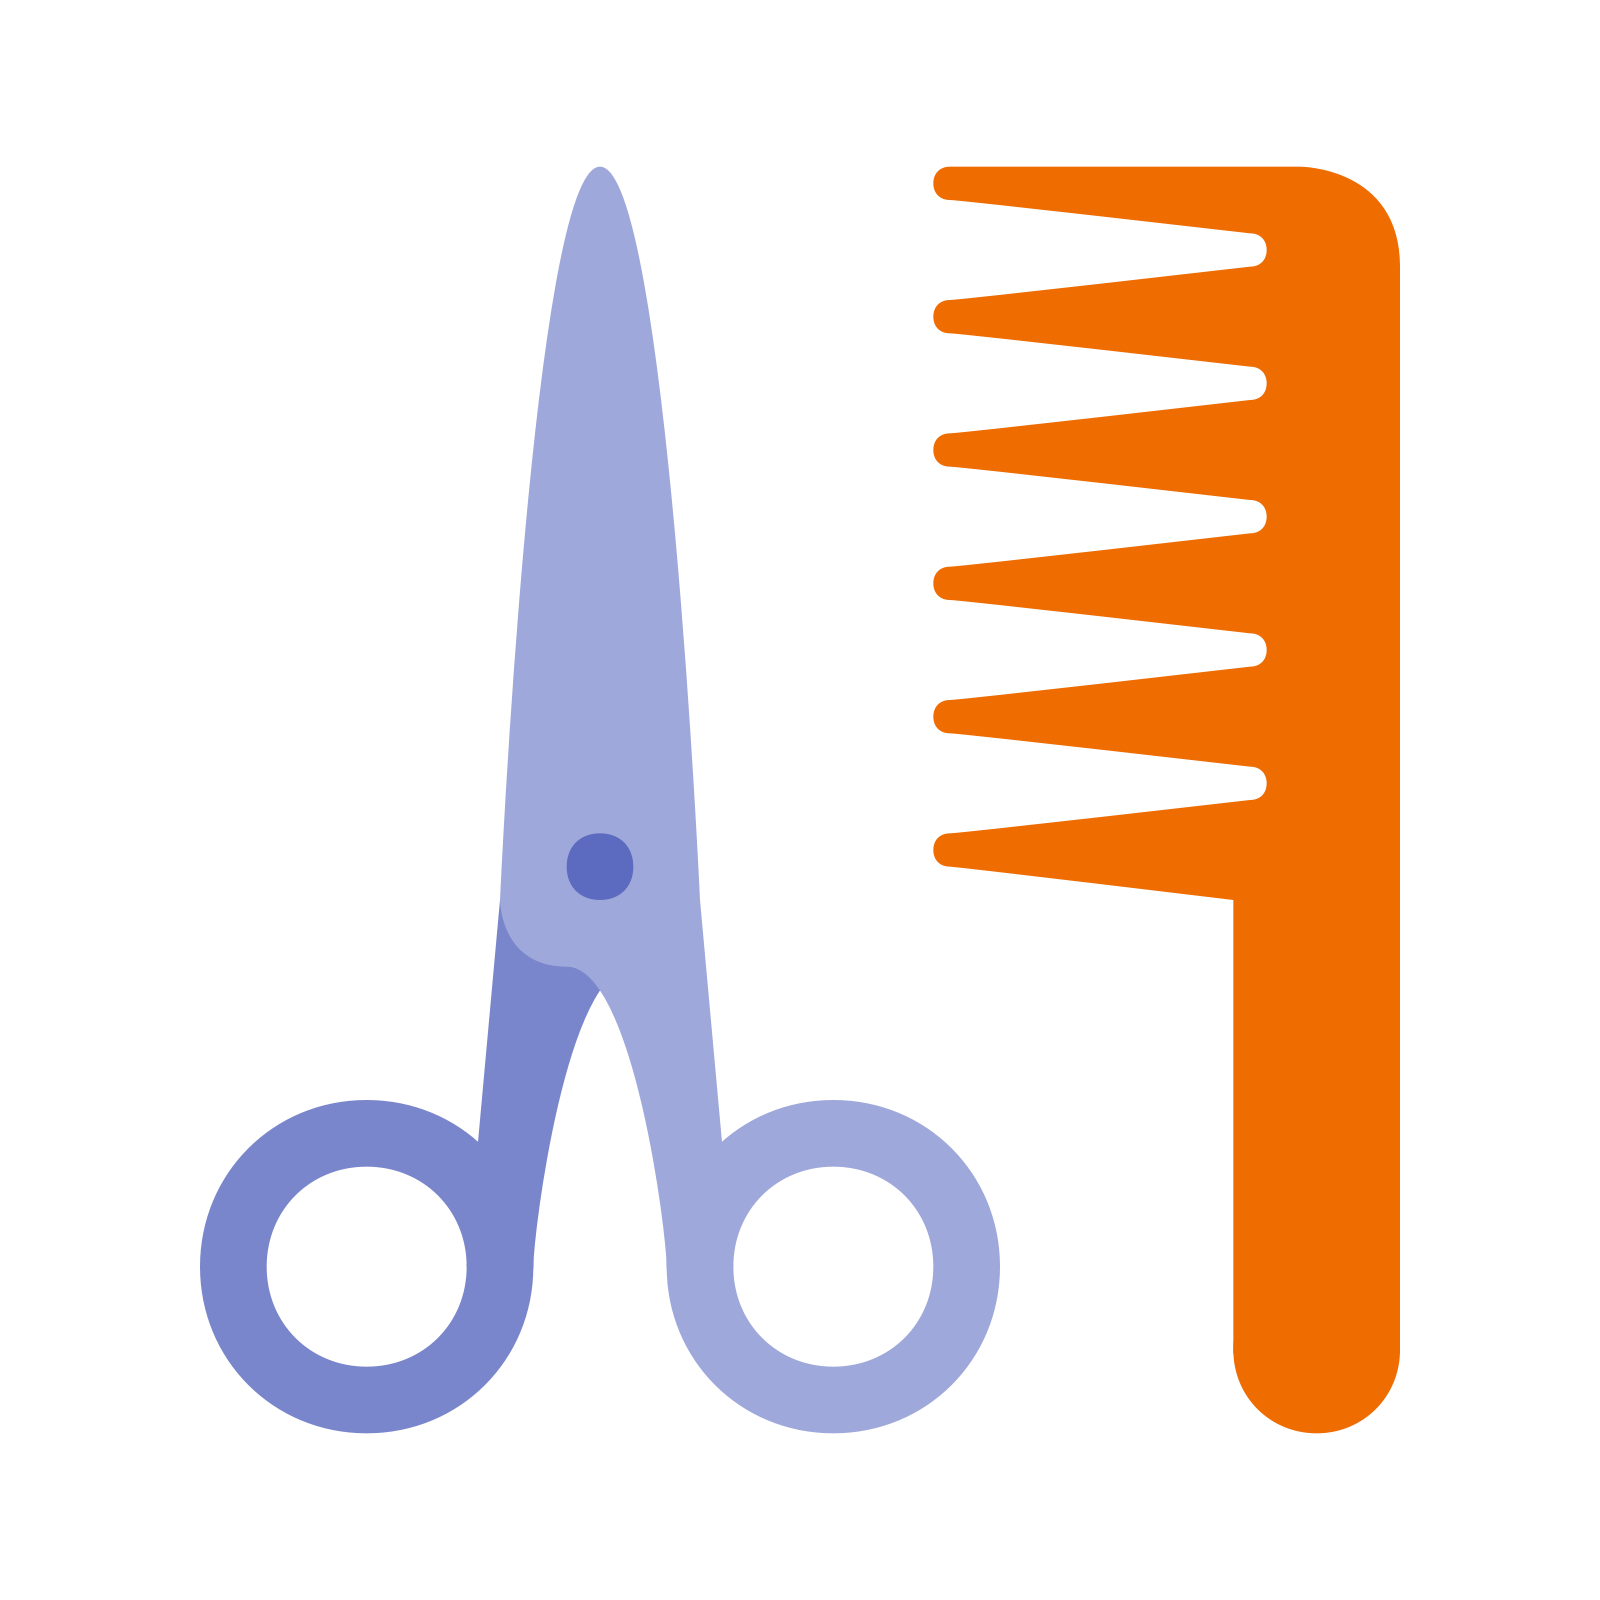 Comb svg beautician. Barbershop icon free png